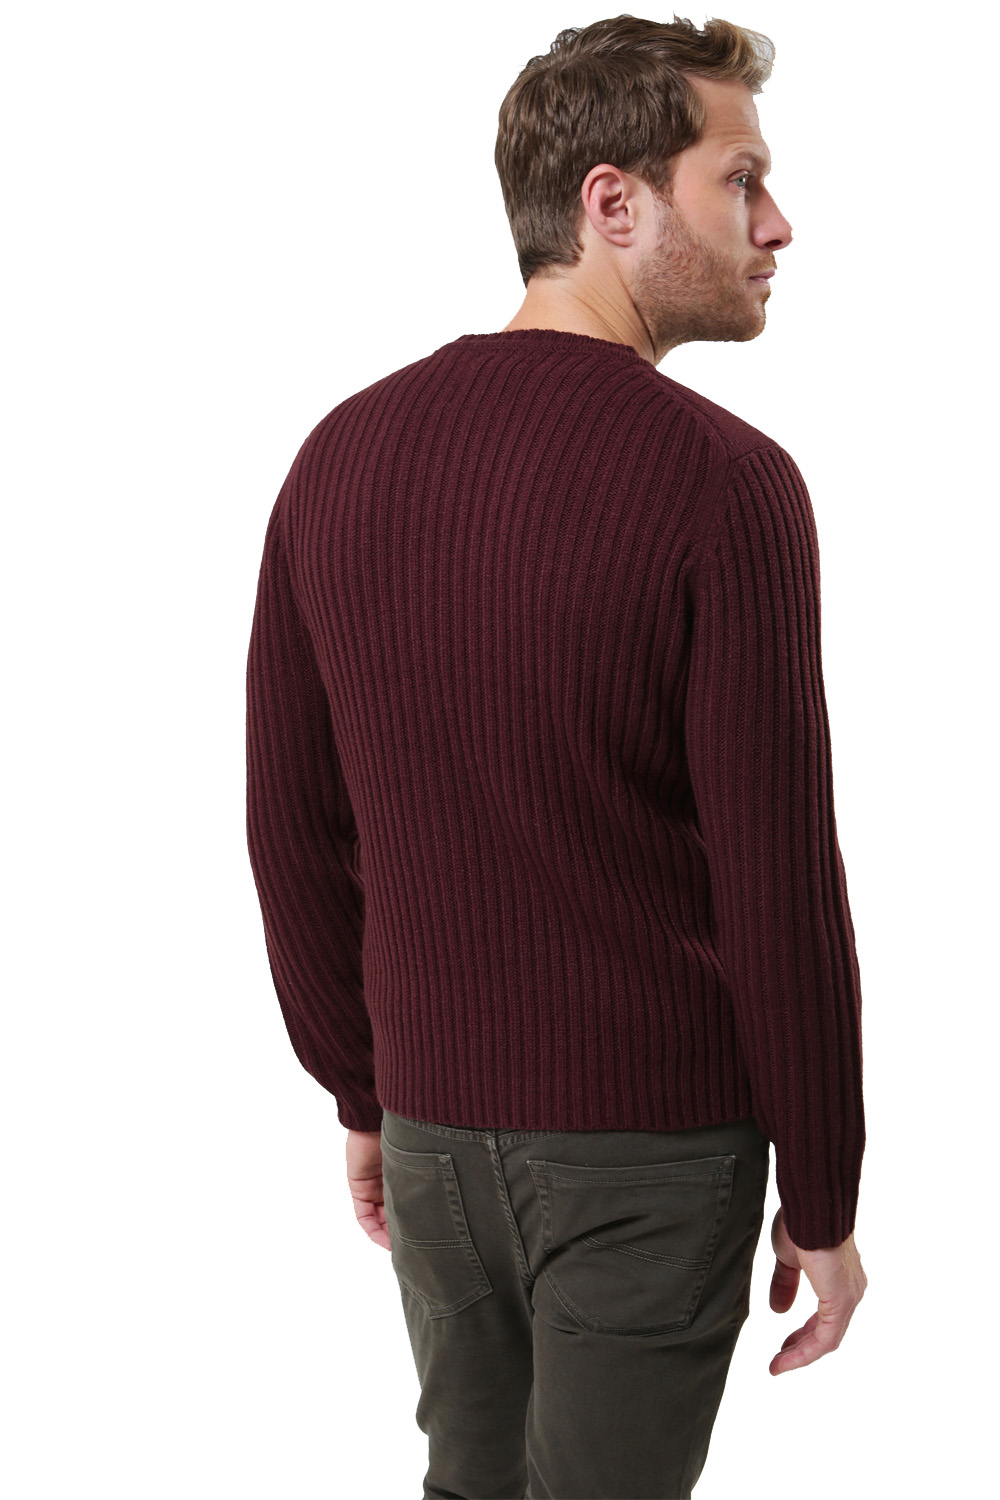 Threadbare-Mens-Saltbush-Jumper-Crew-Neck-Chunky-Cable-Knit-Wool-Blend-Sweater thumbnail 6